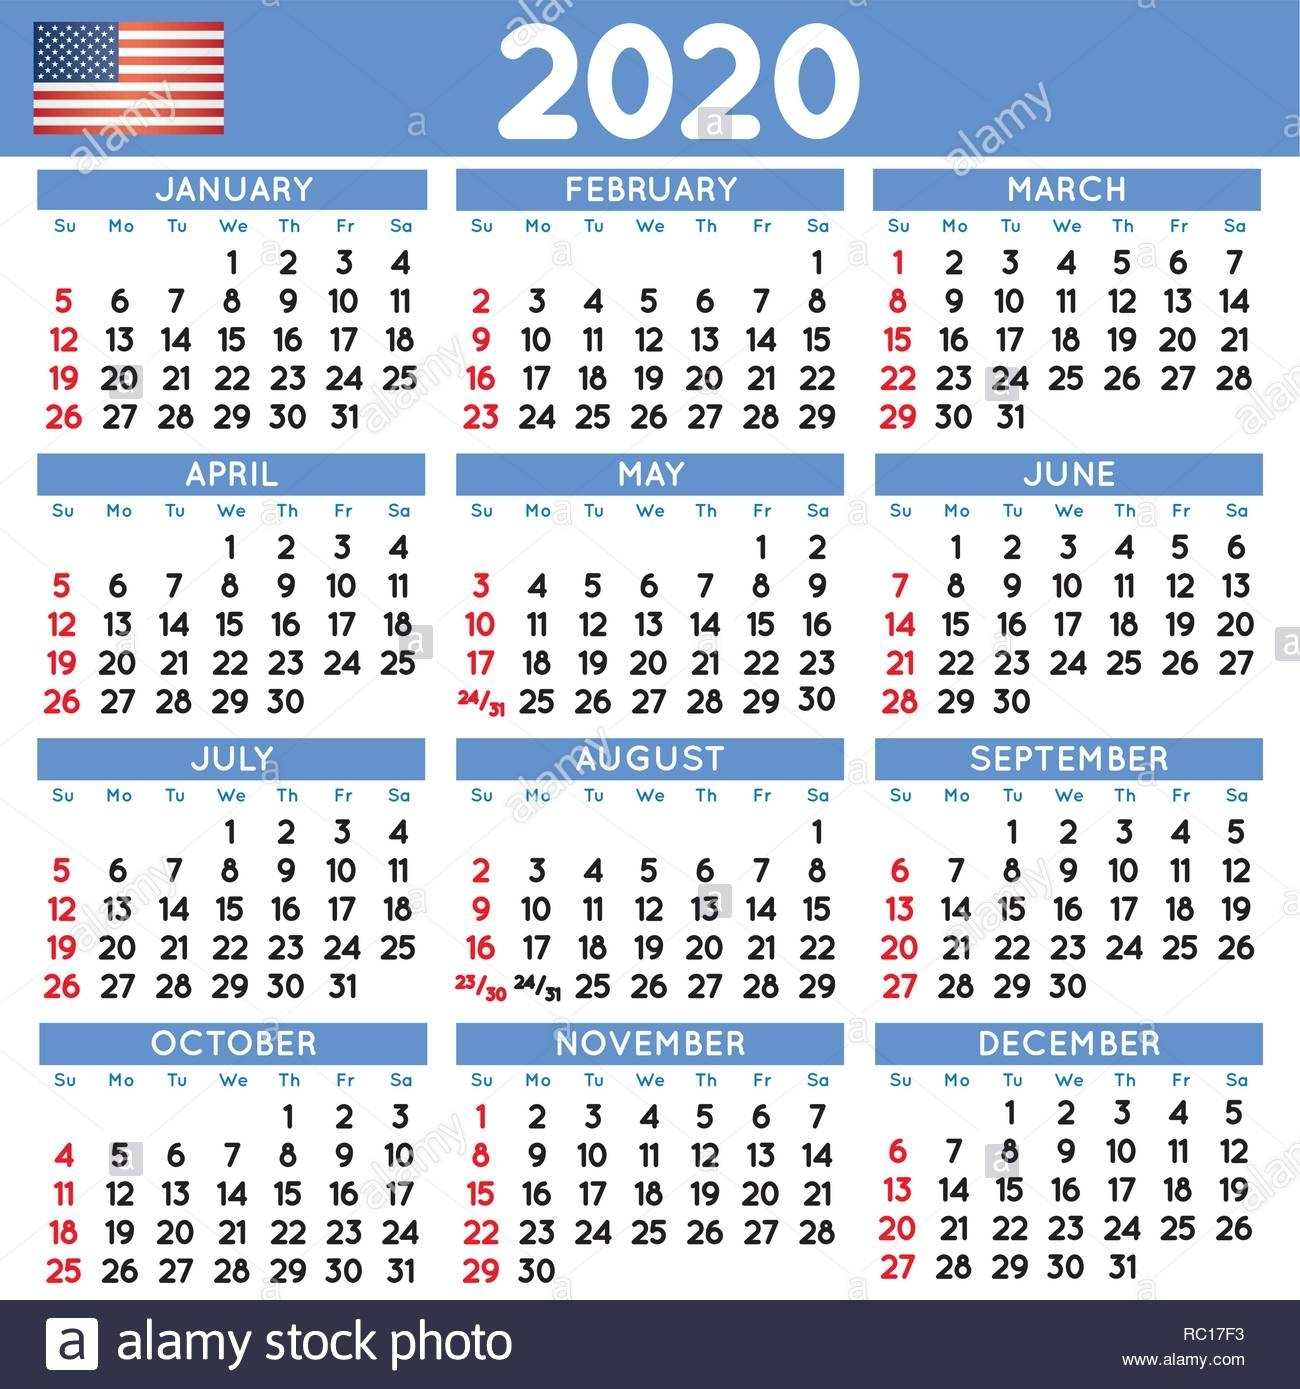 Calendar 2020 Stock Photos & Calendar 2020 Stock Images - Alamy intended for 2020 Calendar